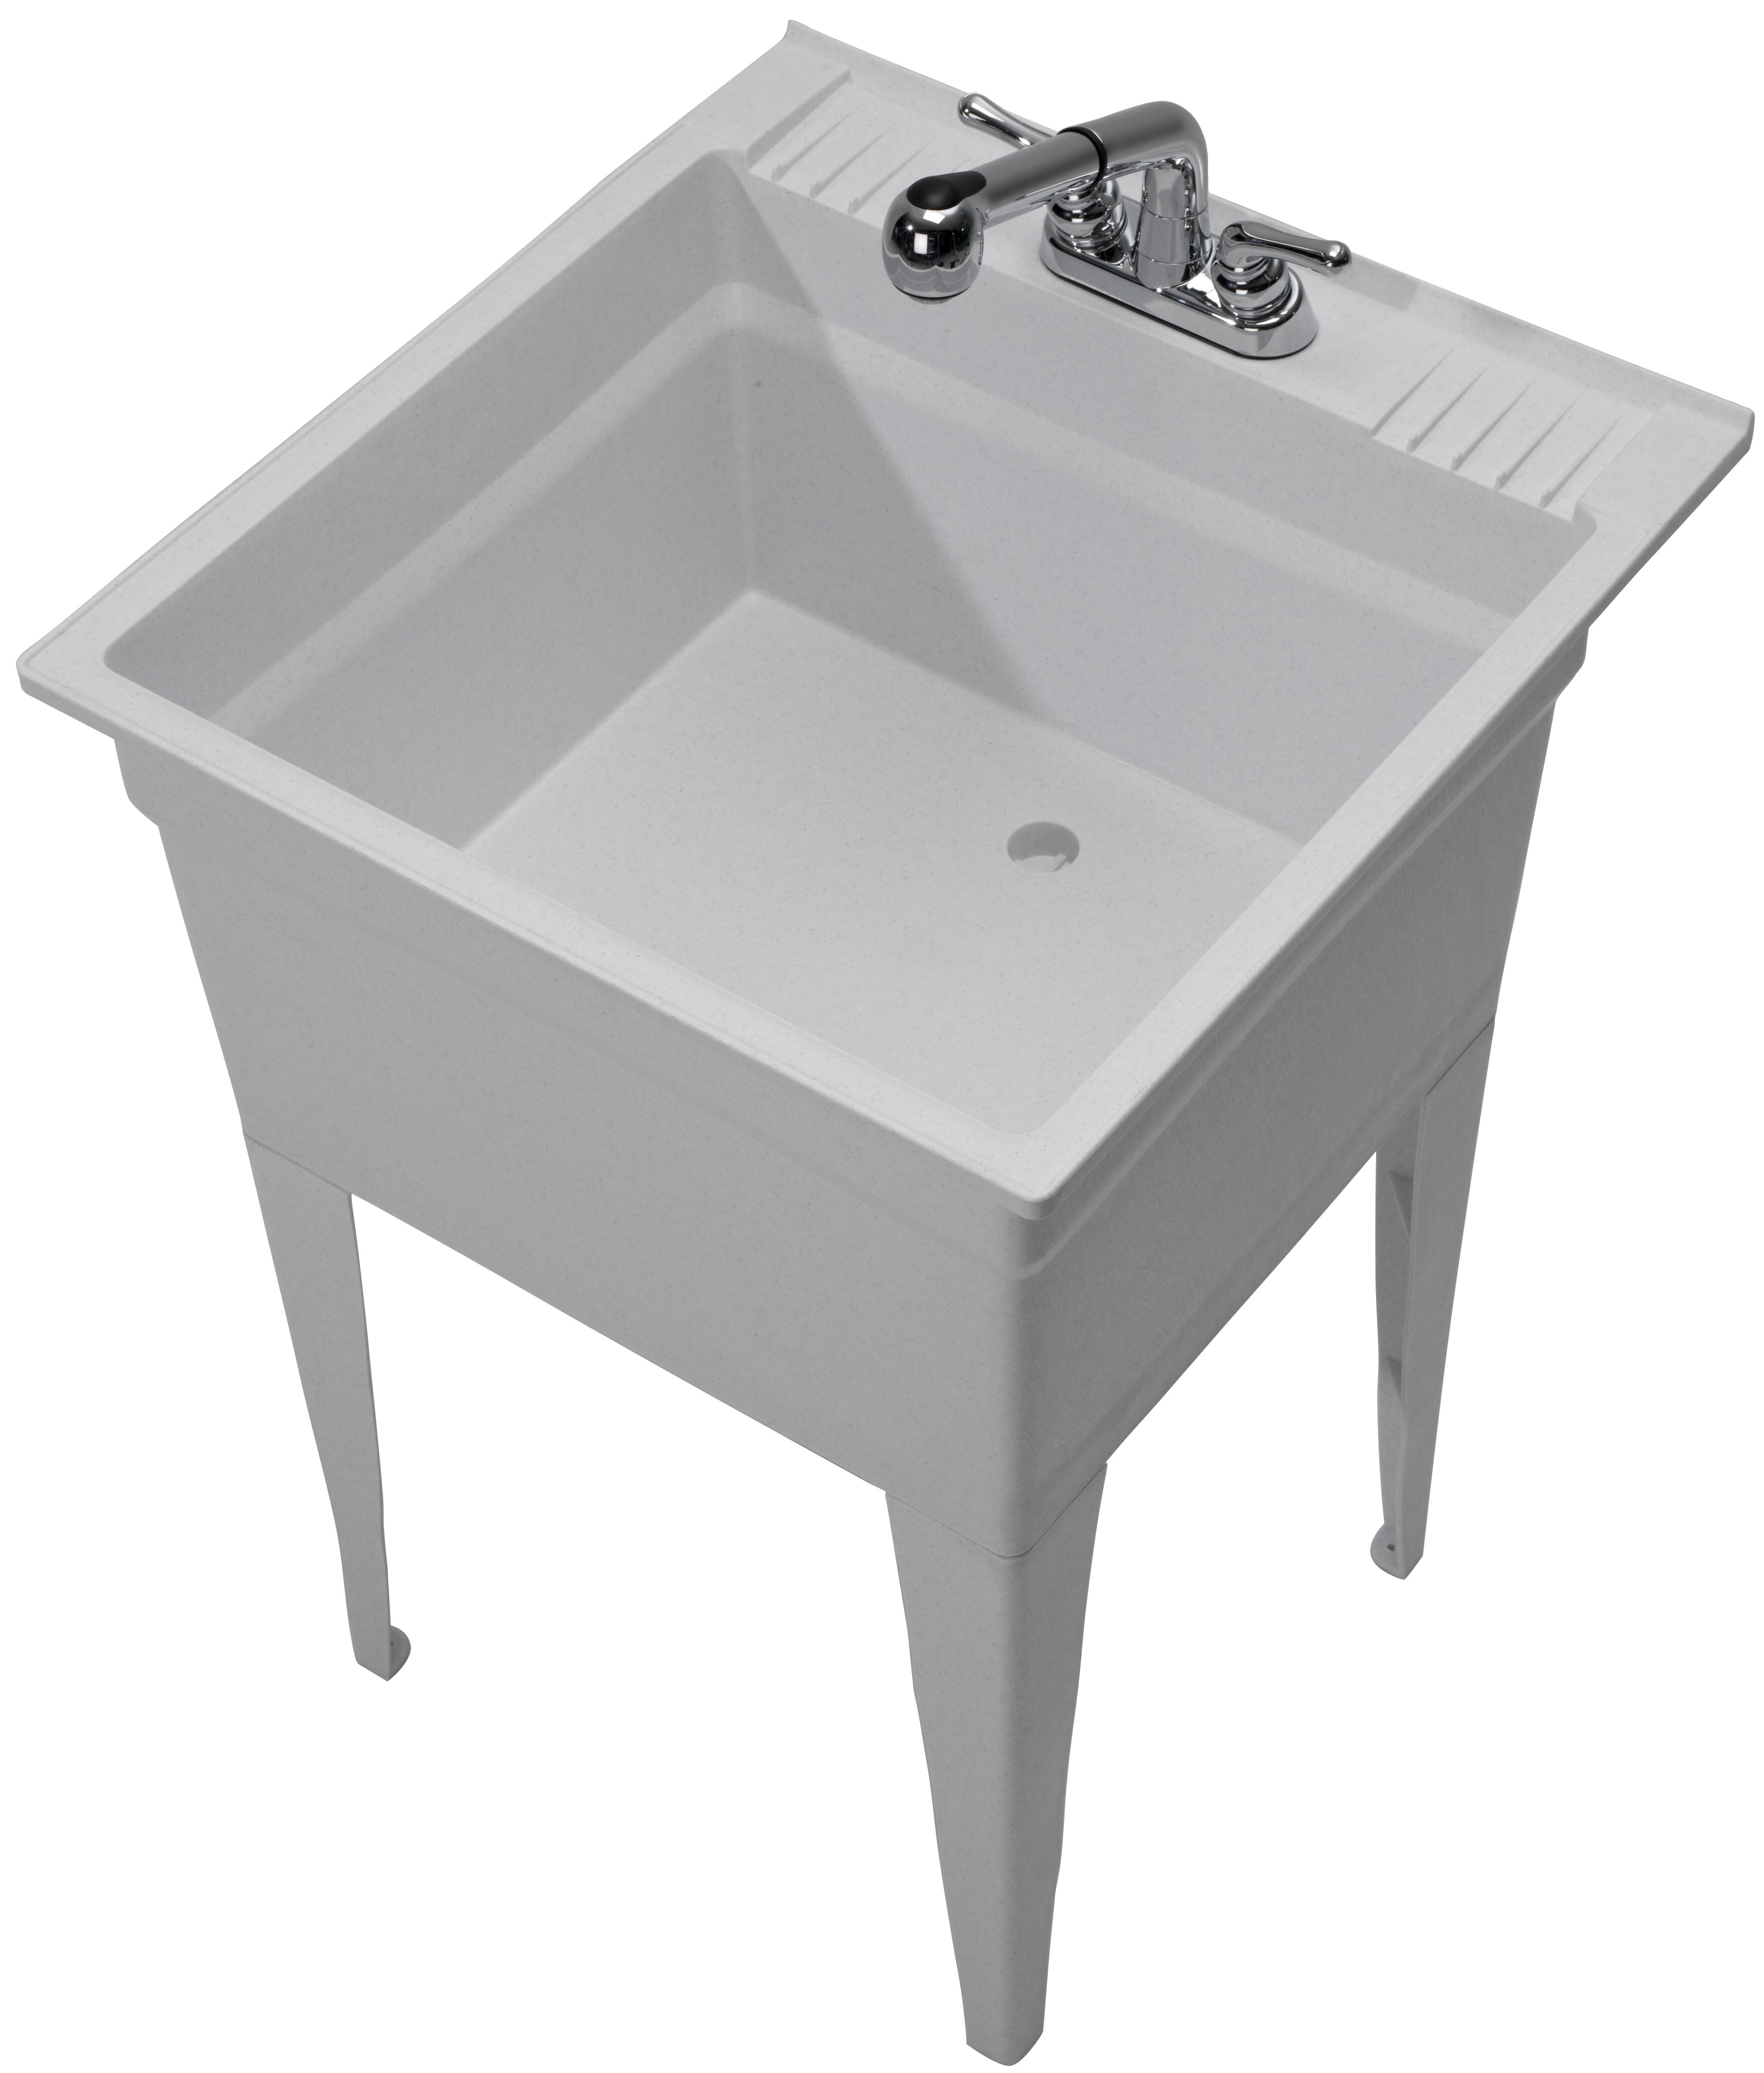 Utility Sink.Heavy Duty 23 75 X 24 75 Freestanding Laundry Sink With Faucet